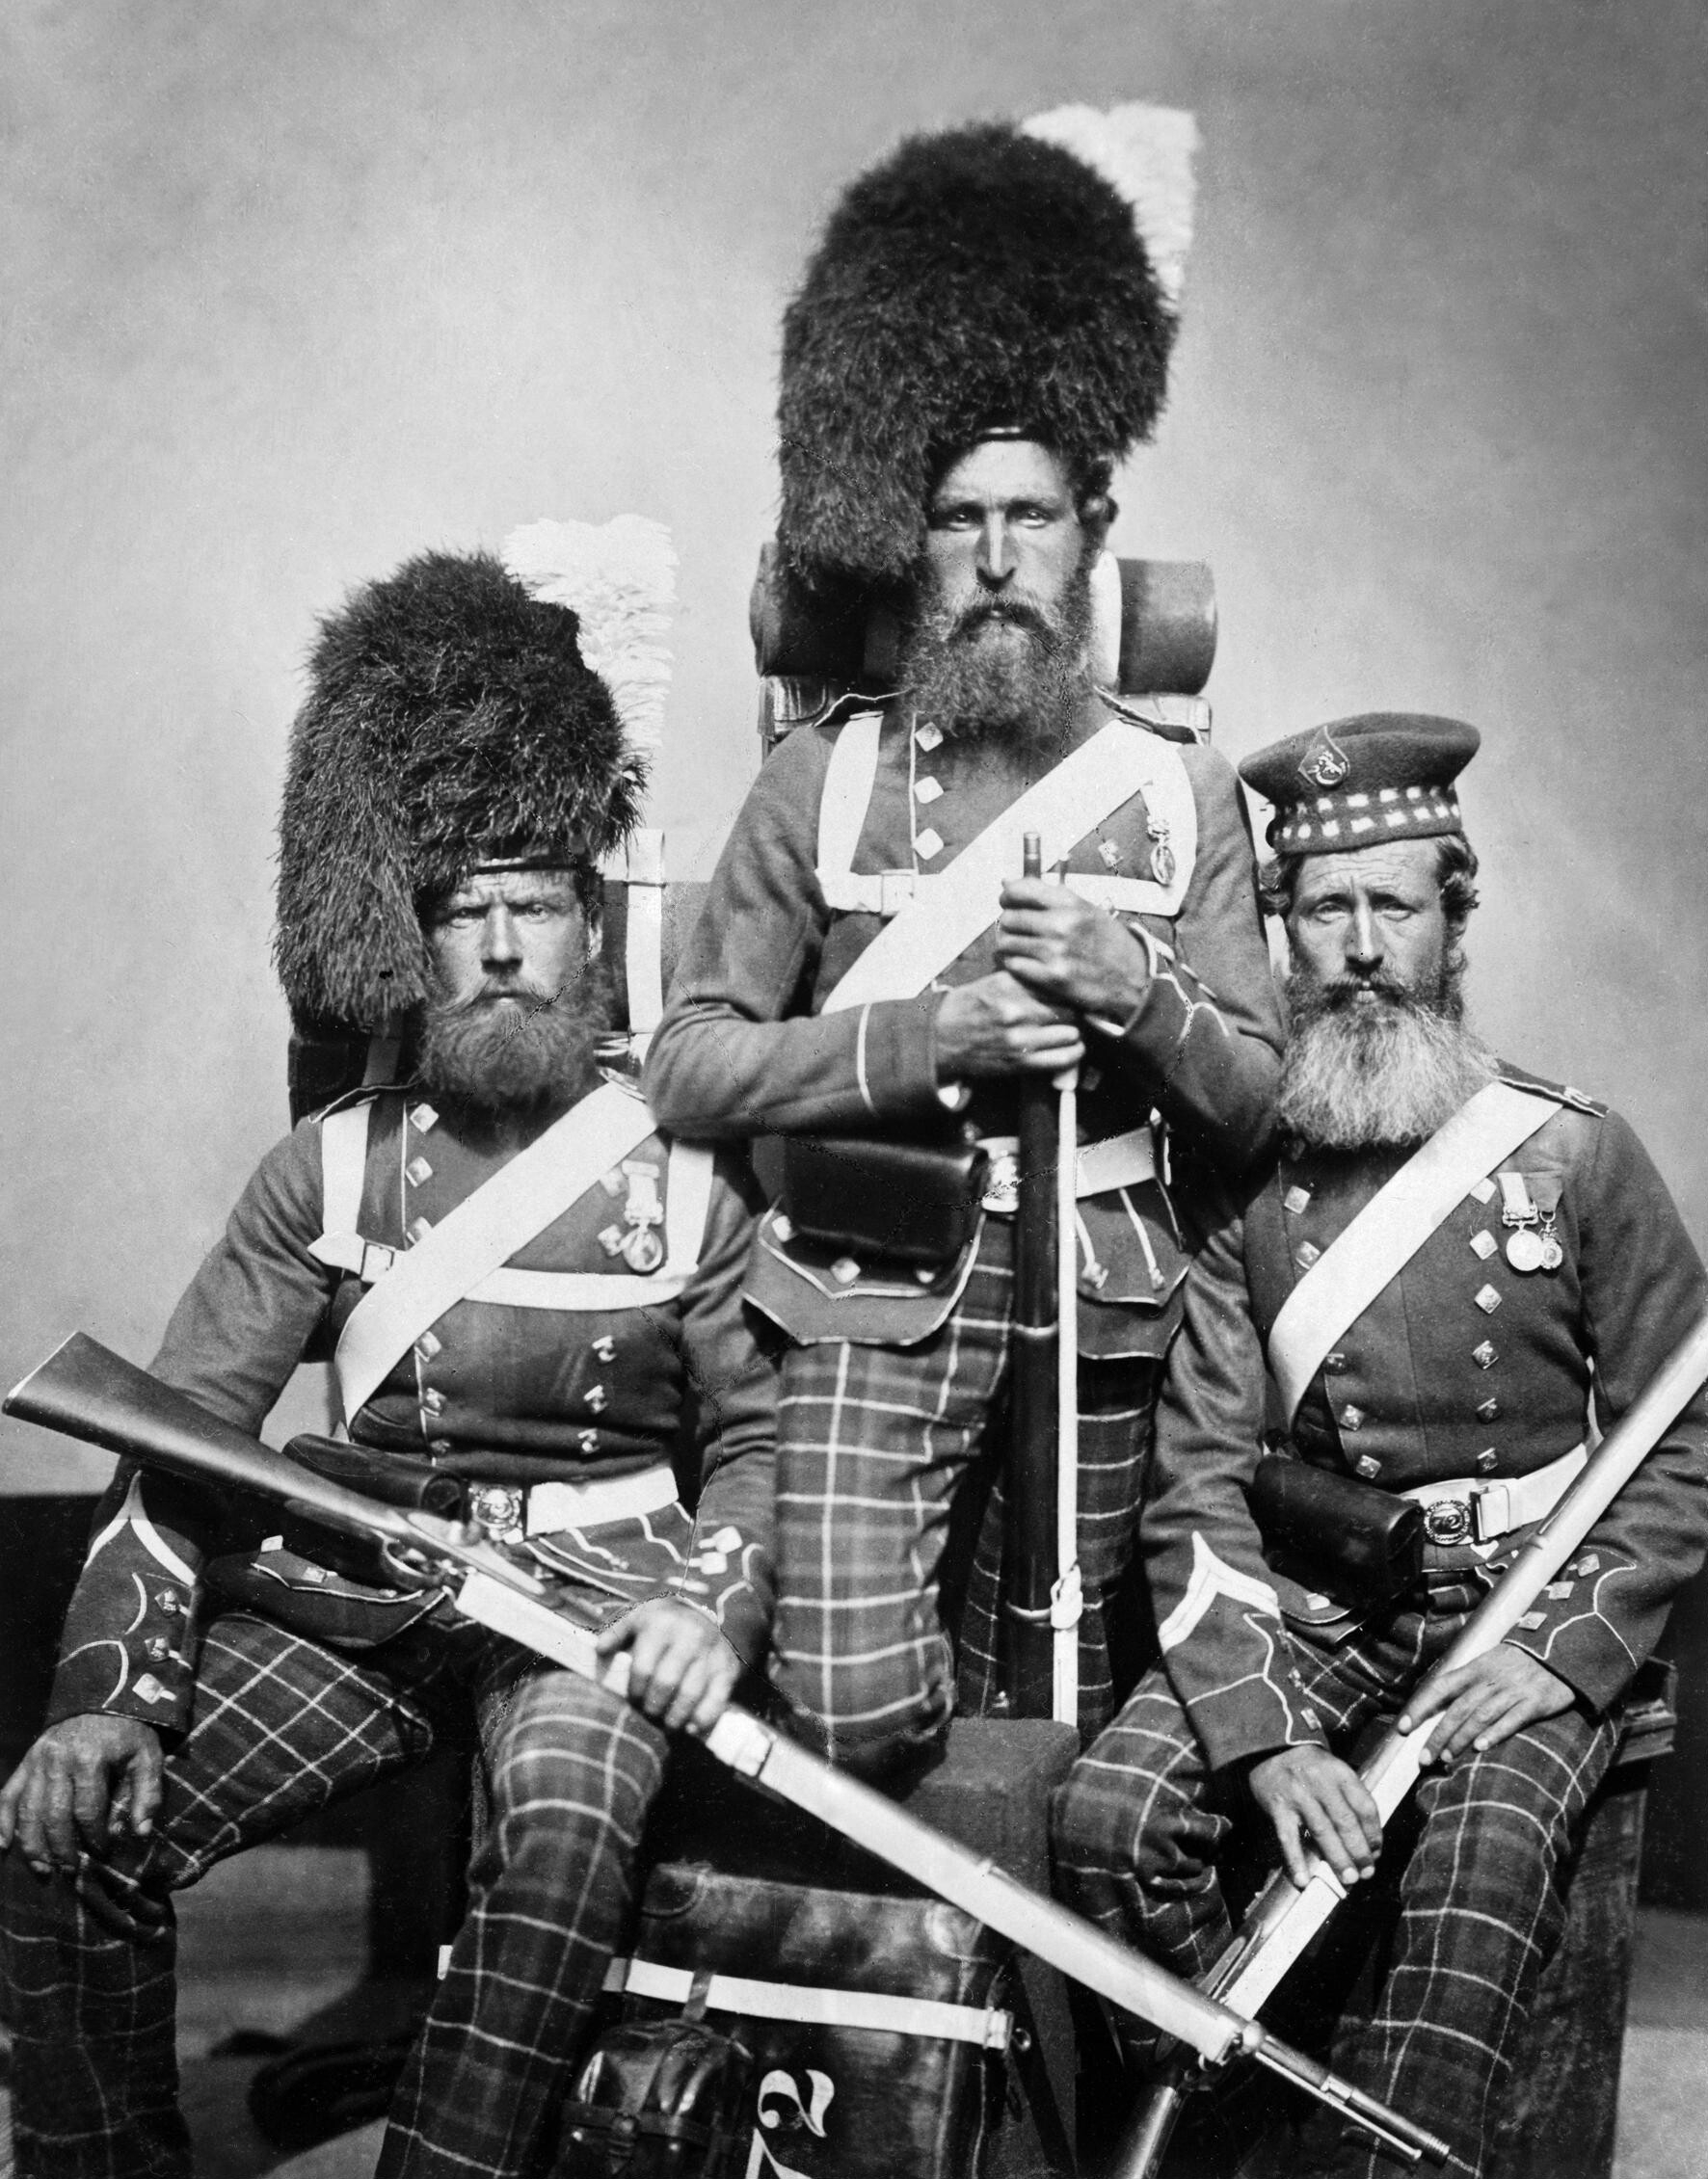 British Army during the Victorian Era